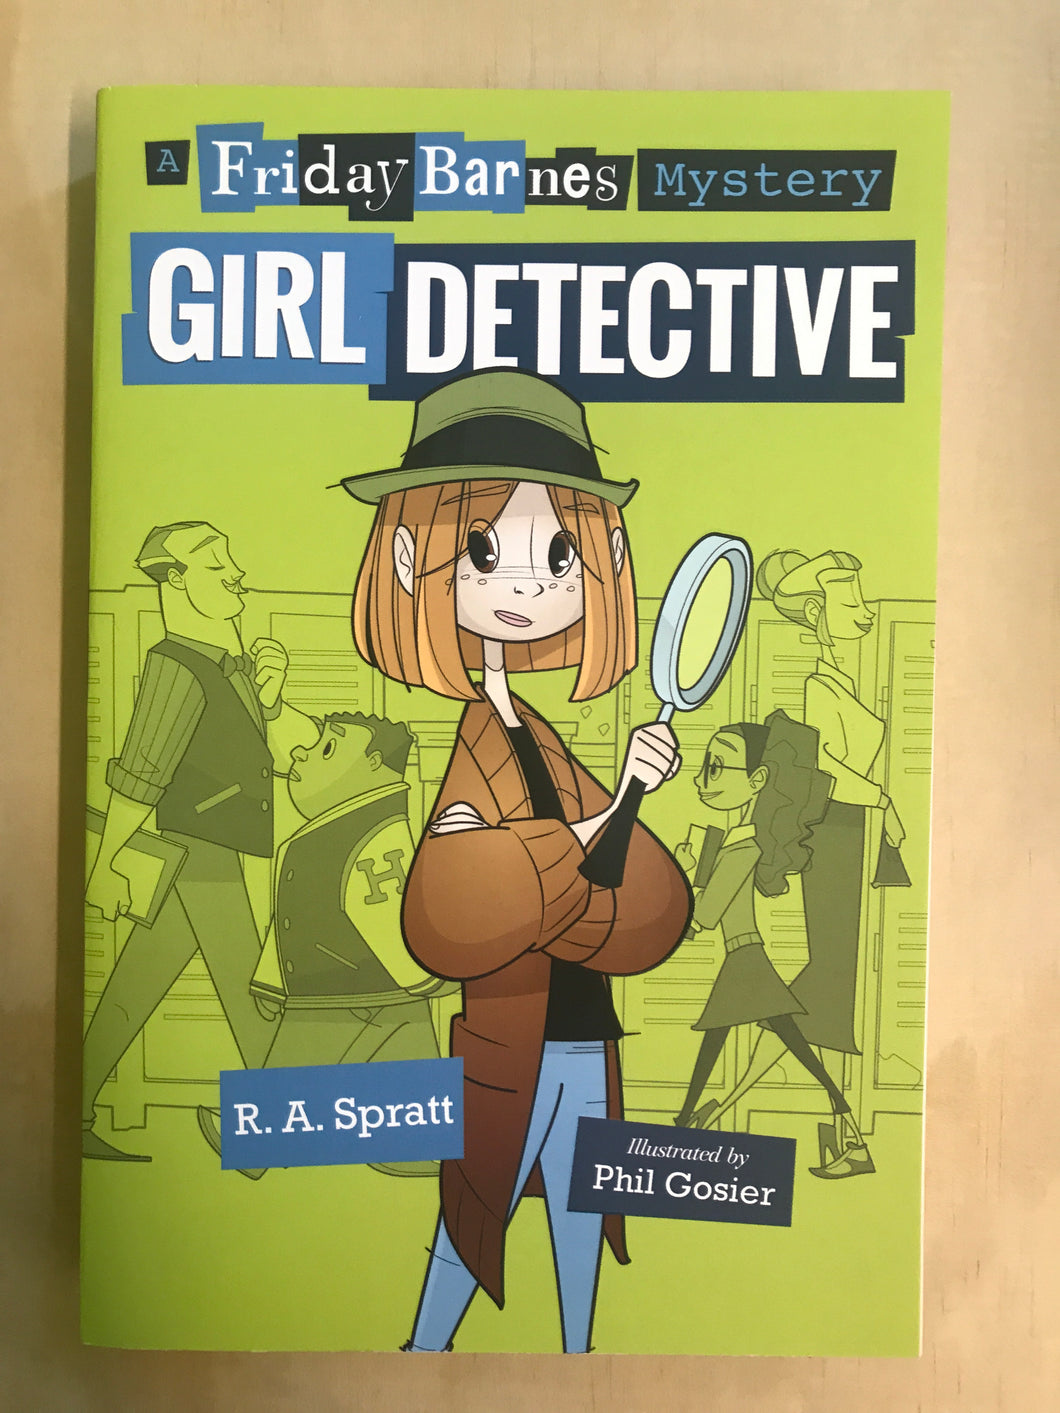 A Friday Barnes Mystery: Girl Detective